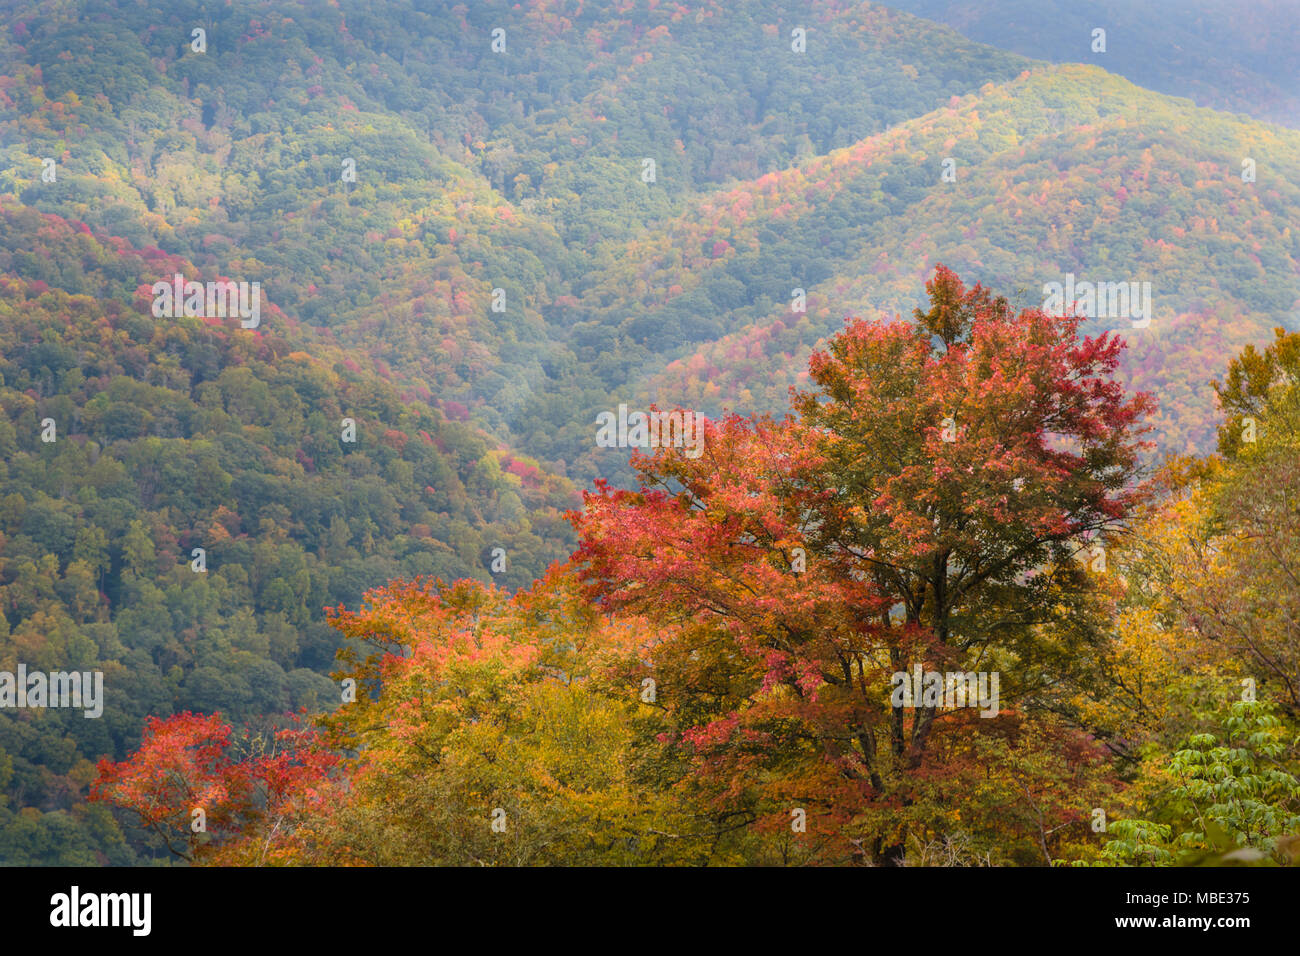 North Carolina, United States of America.  Fall scenery in the Great Smoky Mountains National Park.  UNESCO World Heritage Site. - Stock Image